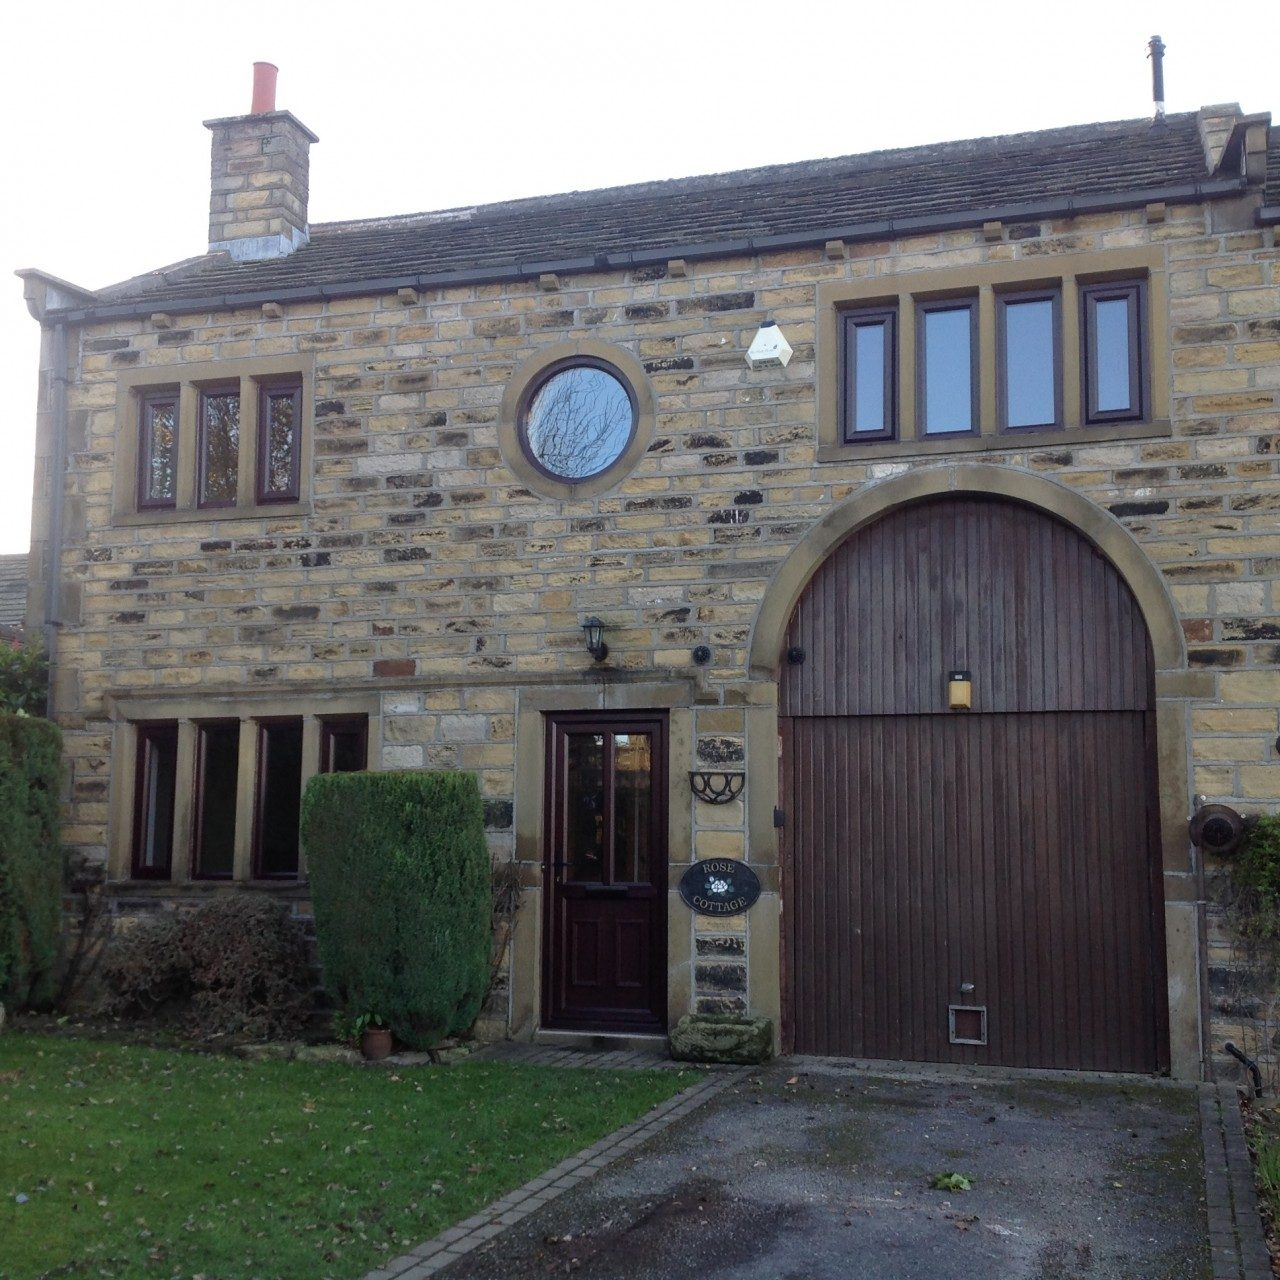 Find Rent Houses: 3 Bedroom House To Rent In Stocksmoor, Huddersfield